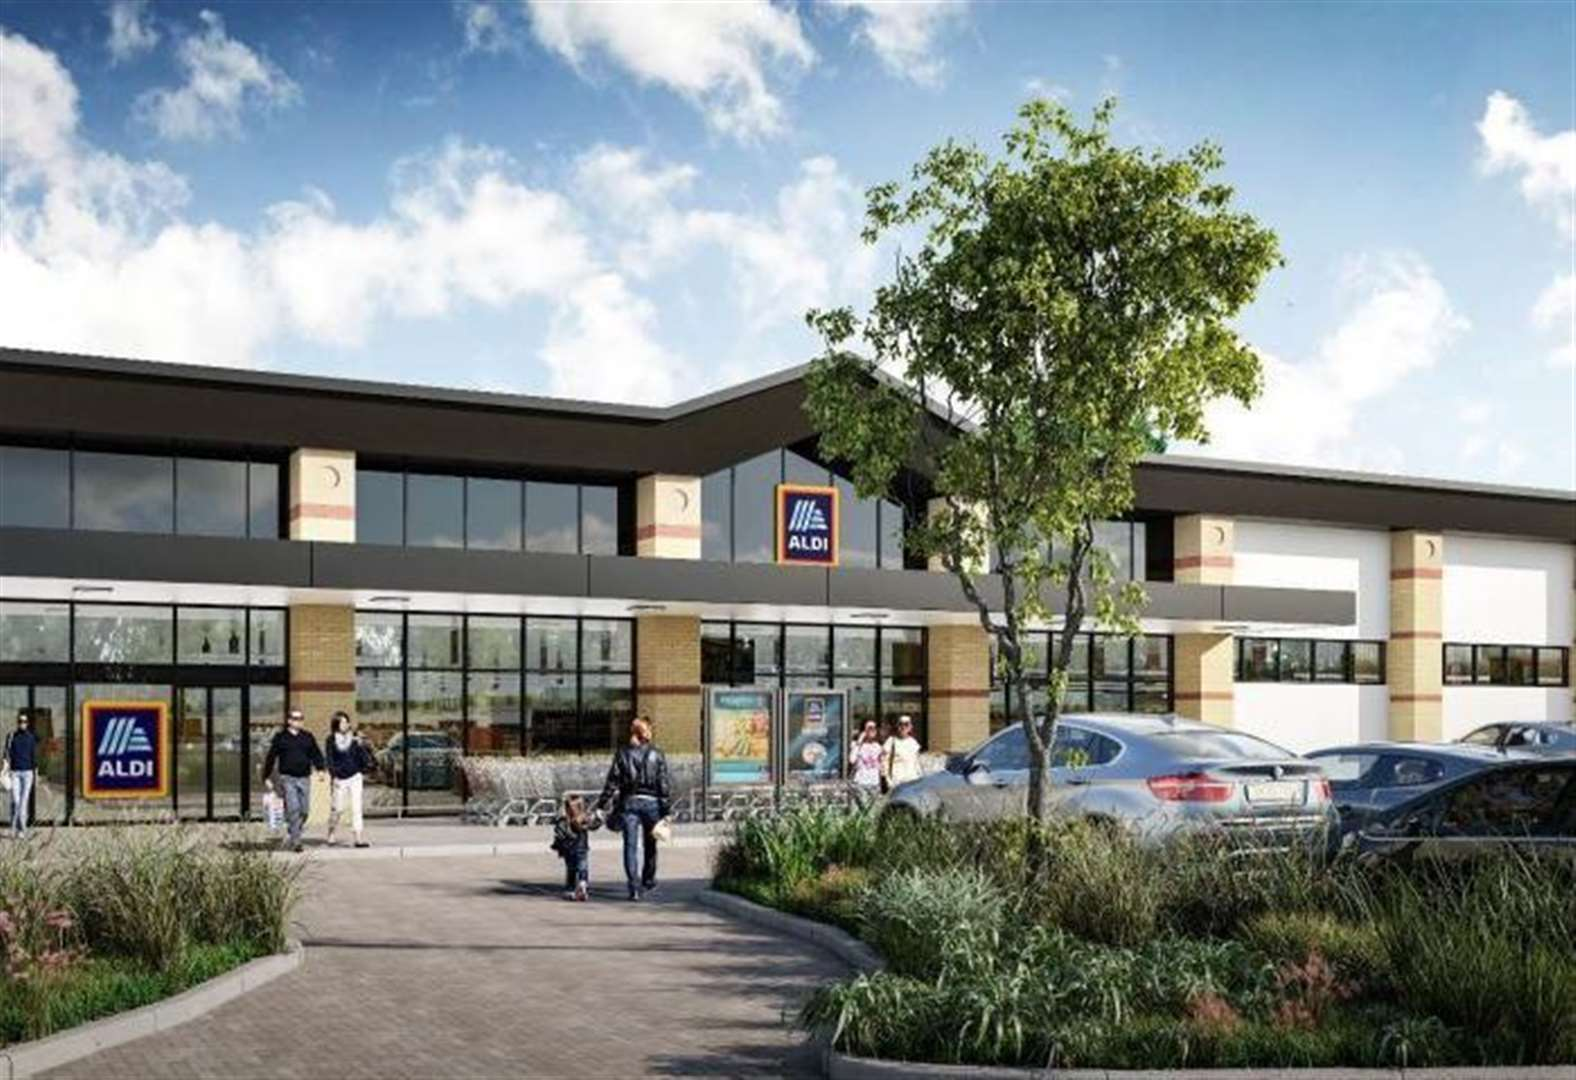 Supermarket wars heat up as Aldi wins approval for new store in Cambridge